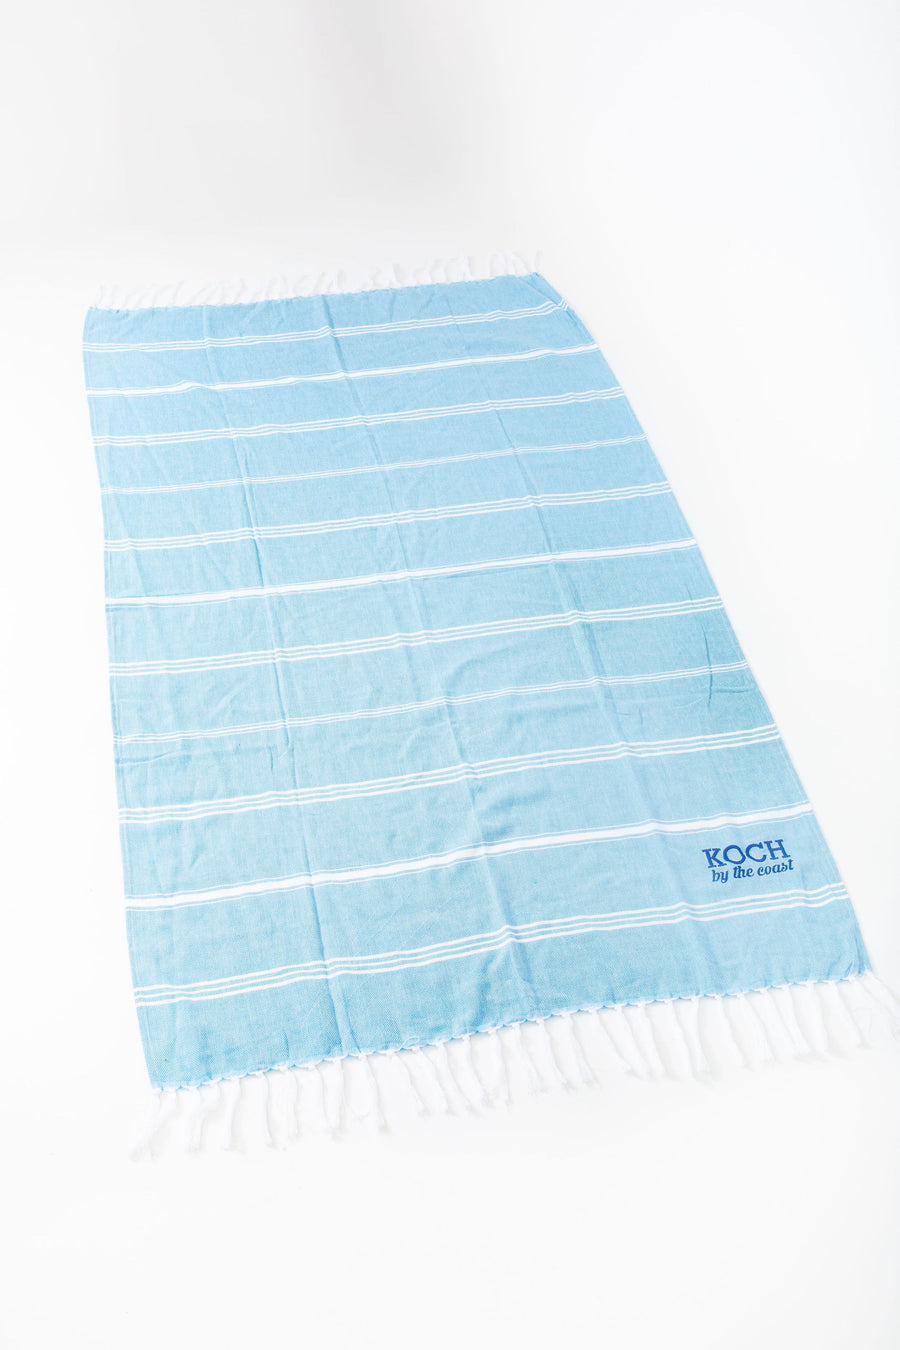 KOCH BY THE COAST BEACH TOWEL *LIMITED*EDITION*